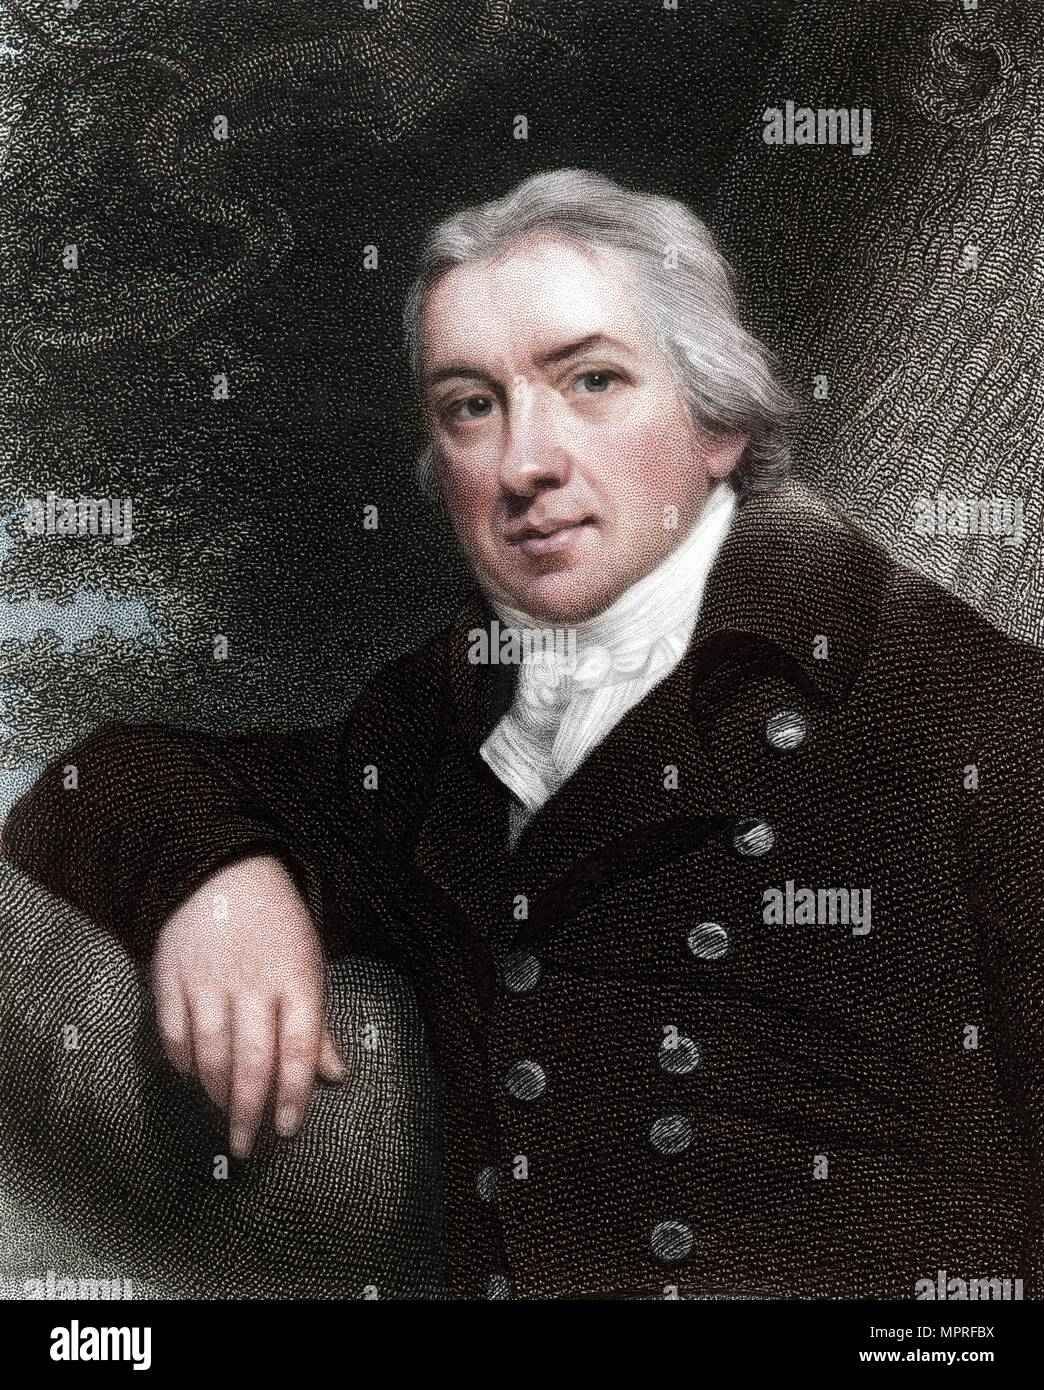 Edward Jenner, English physician, 1837.  Artist: Unknown. - Stock Image